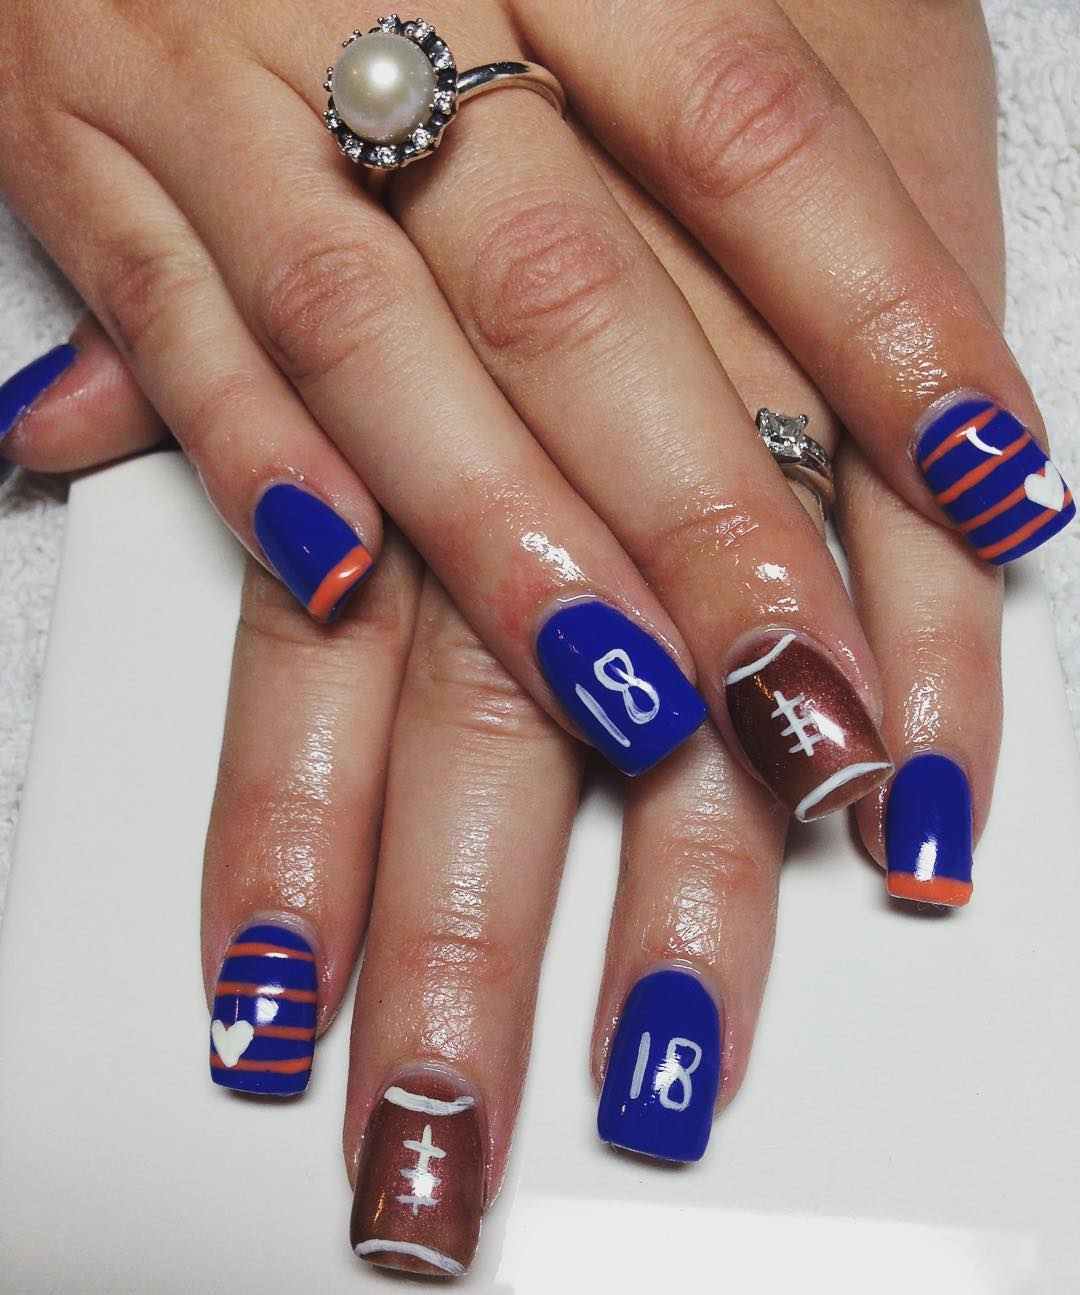 Blue Nails for Devner Broncos - 18 Best Nail Art Designs For Super Bowl 2016